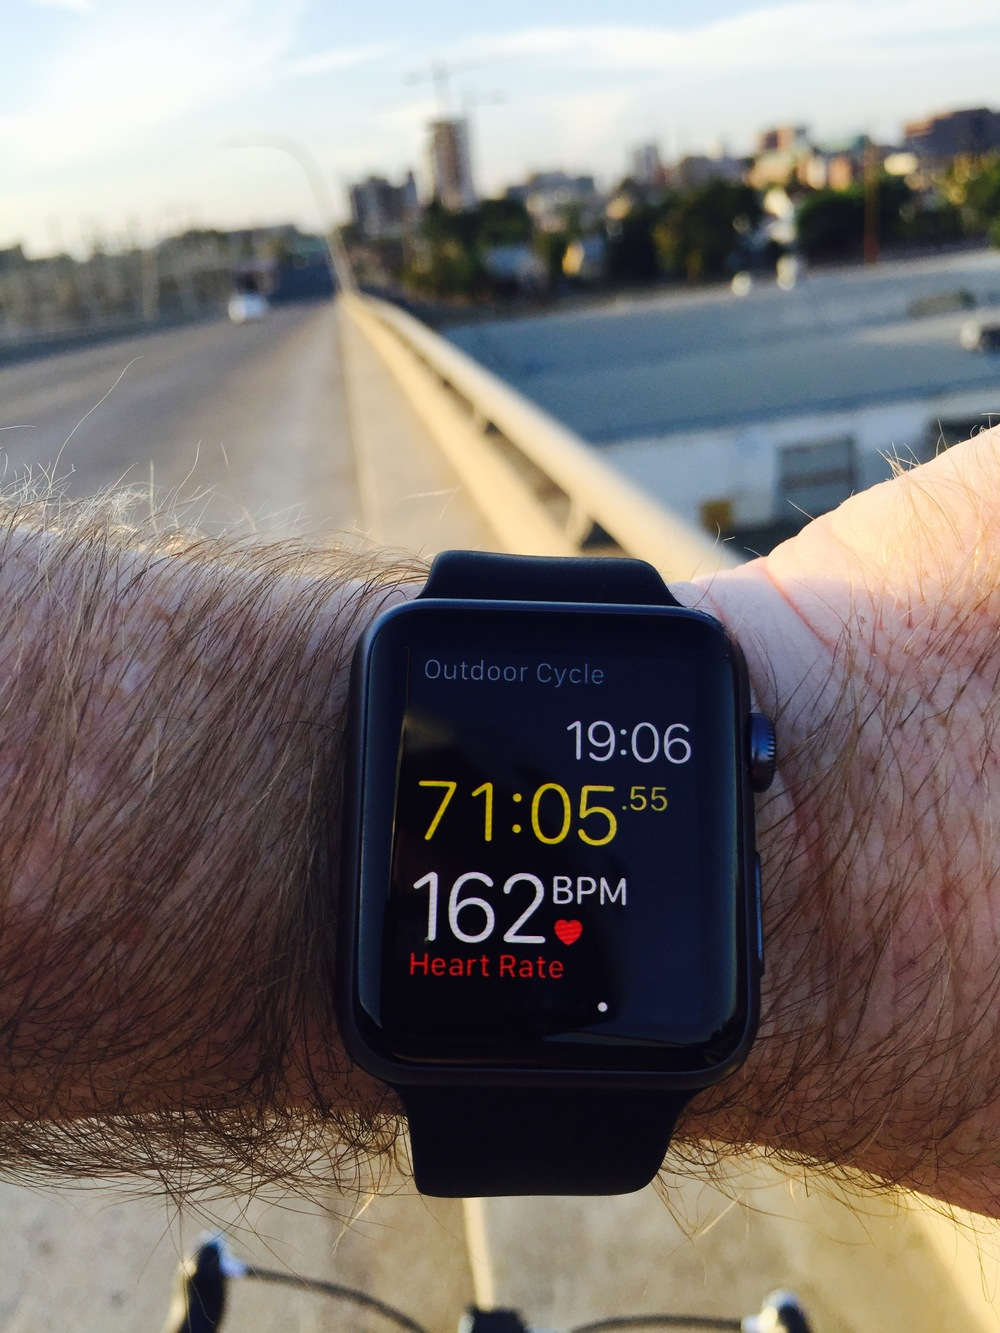 Apple Watch bike stockton Photo Aug 18, 7 06 42 PM.jpg